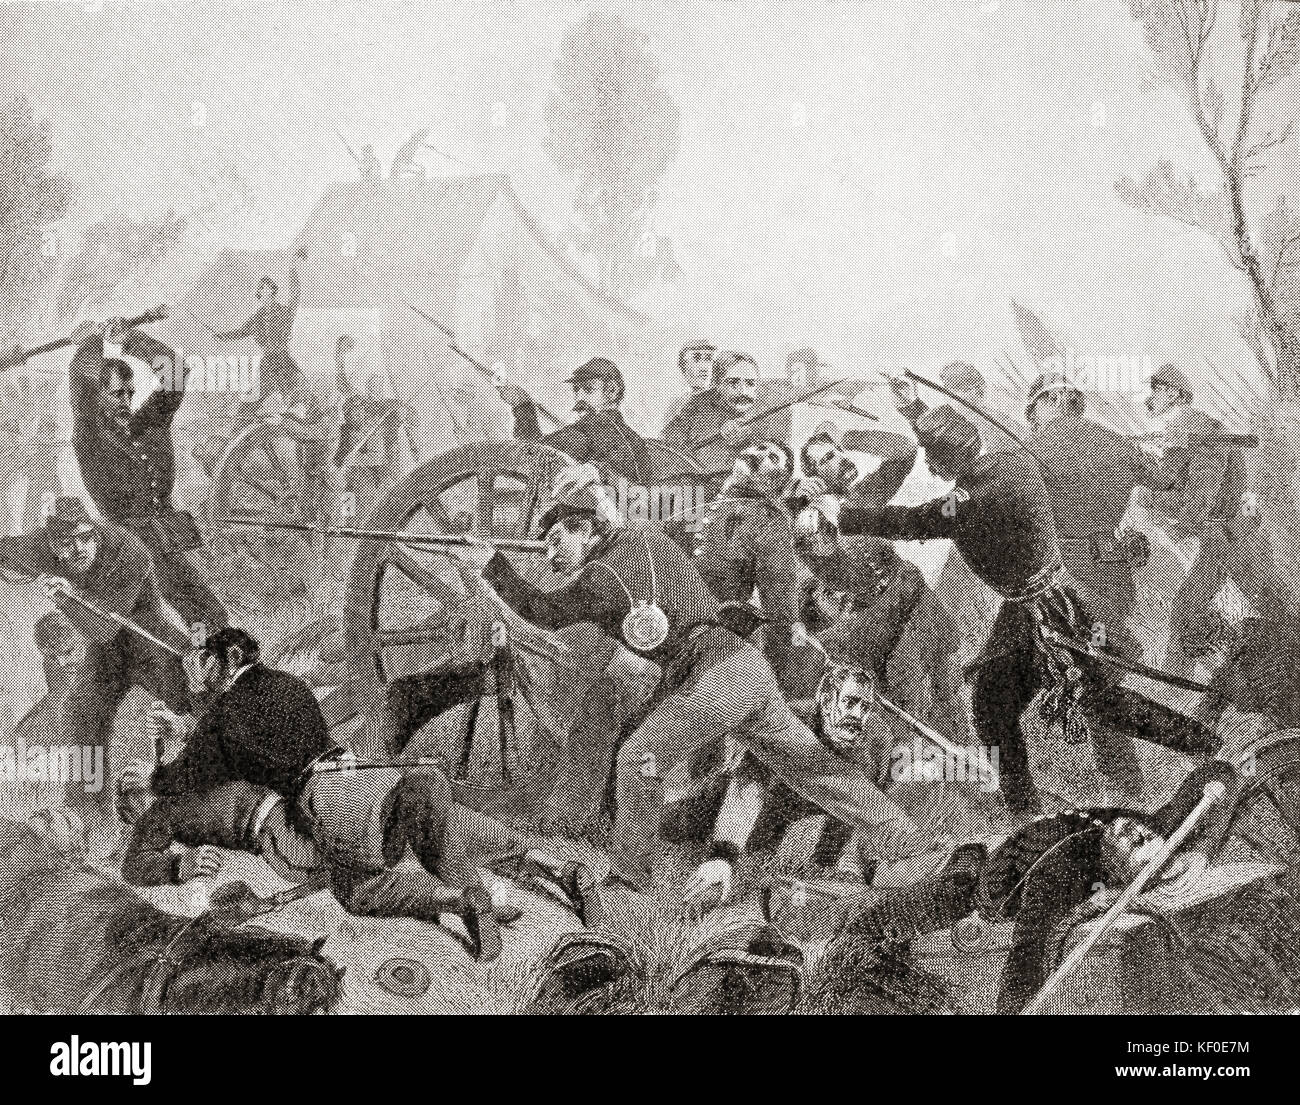 The Battle of Shiloh, aka the Battle of Pittsburg Landing,1862, a major battle in the Western Theater of the American - Stock Image